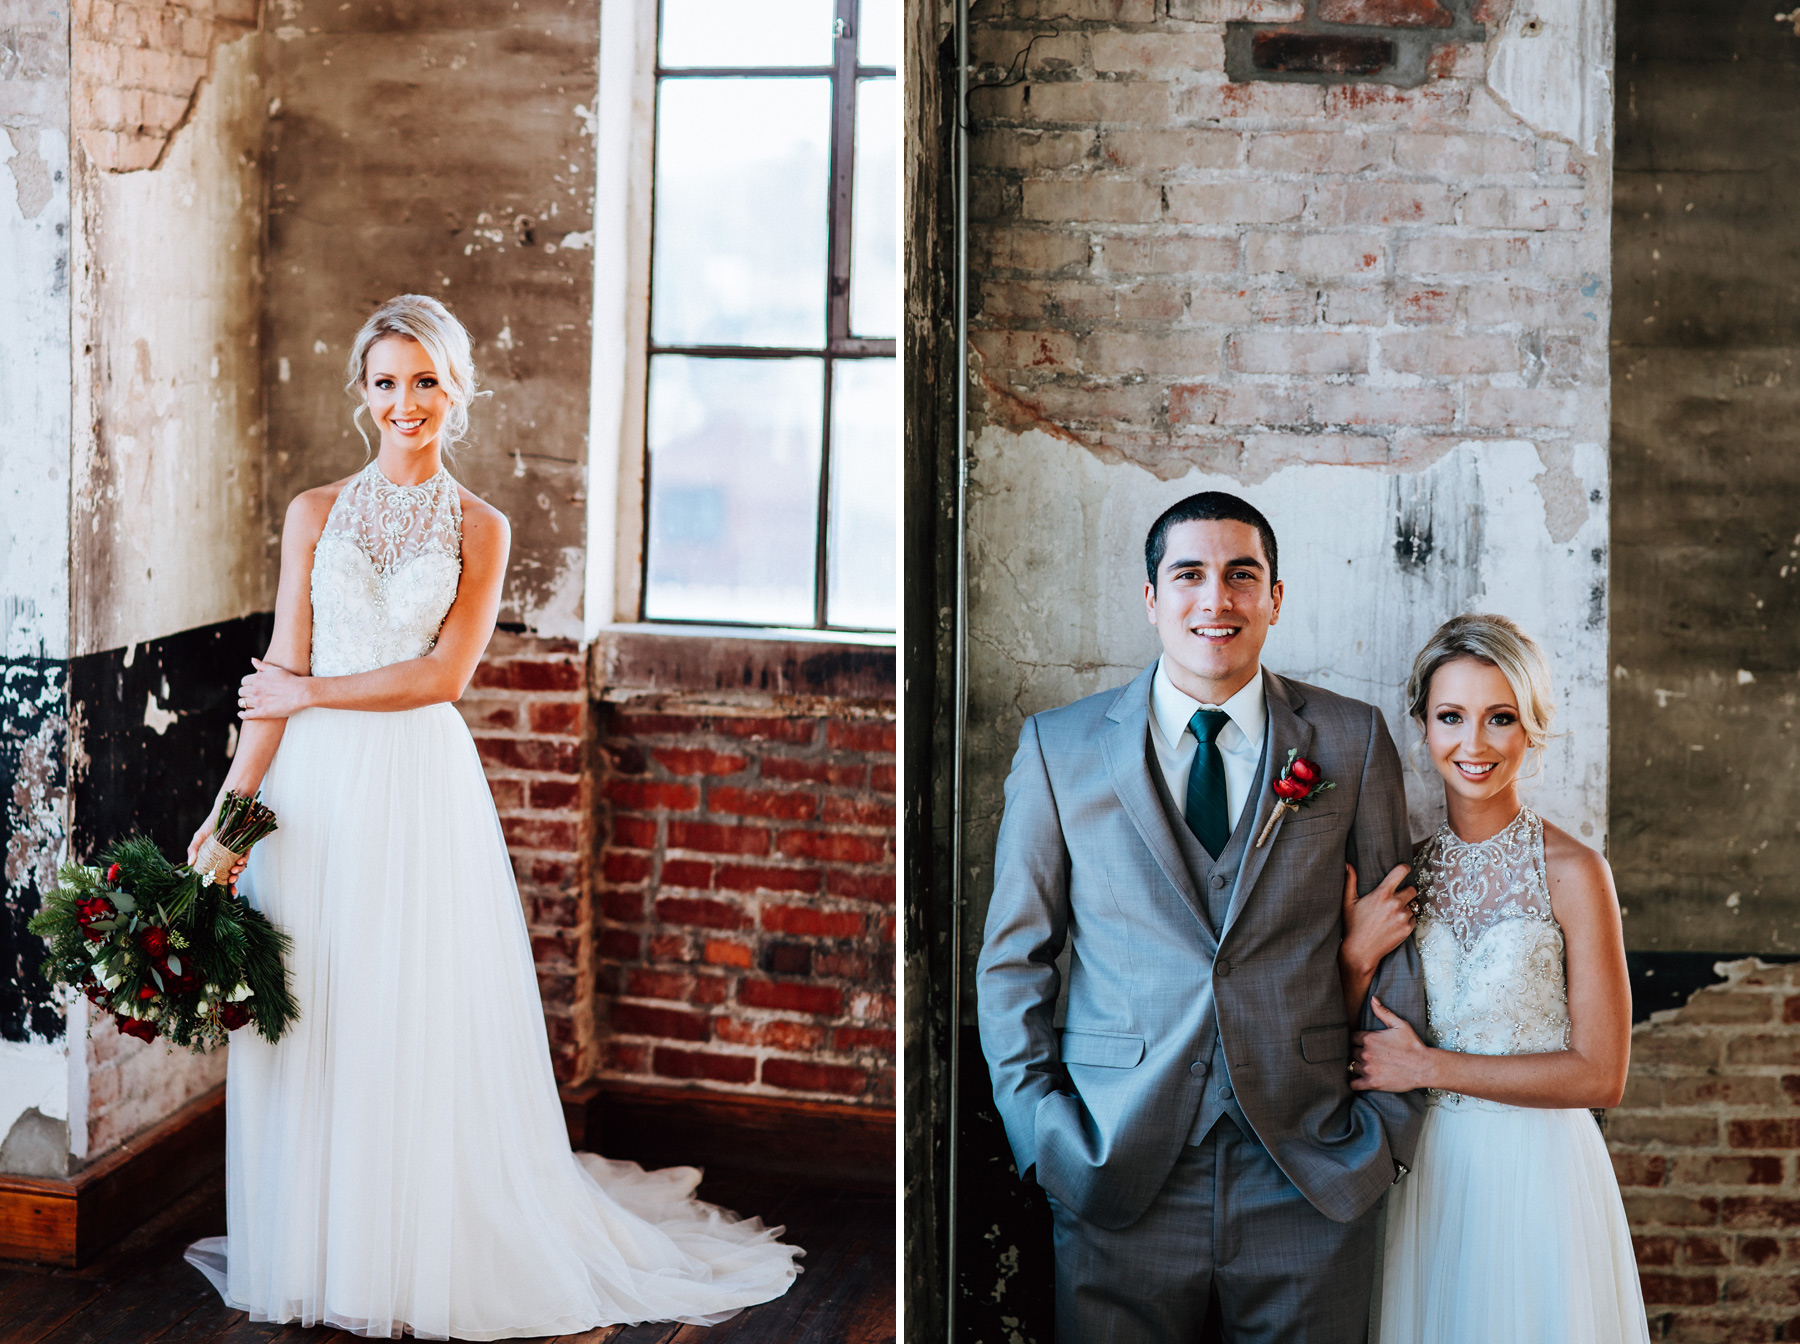 205_The Bauer Winter Wedding Kansas City_Kindling Wedding Photography.JPG